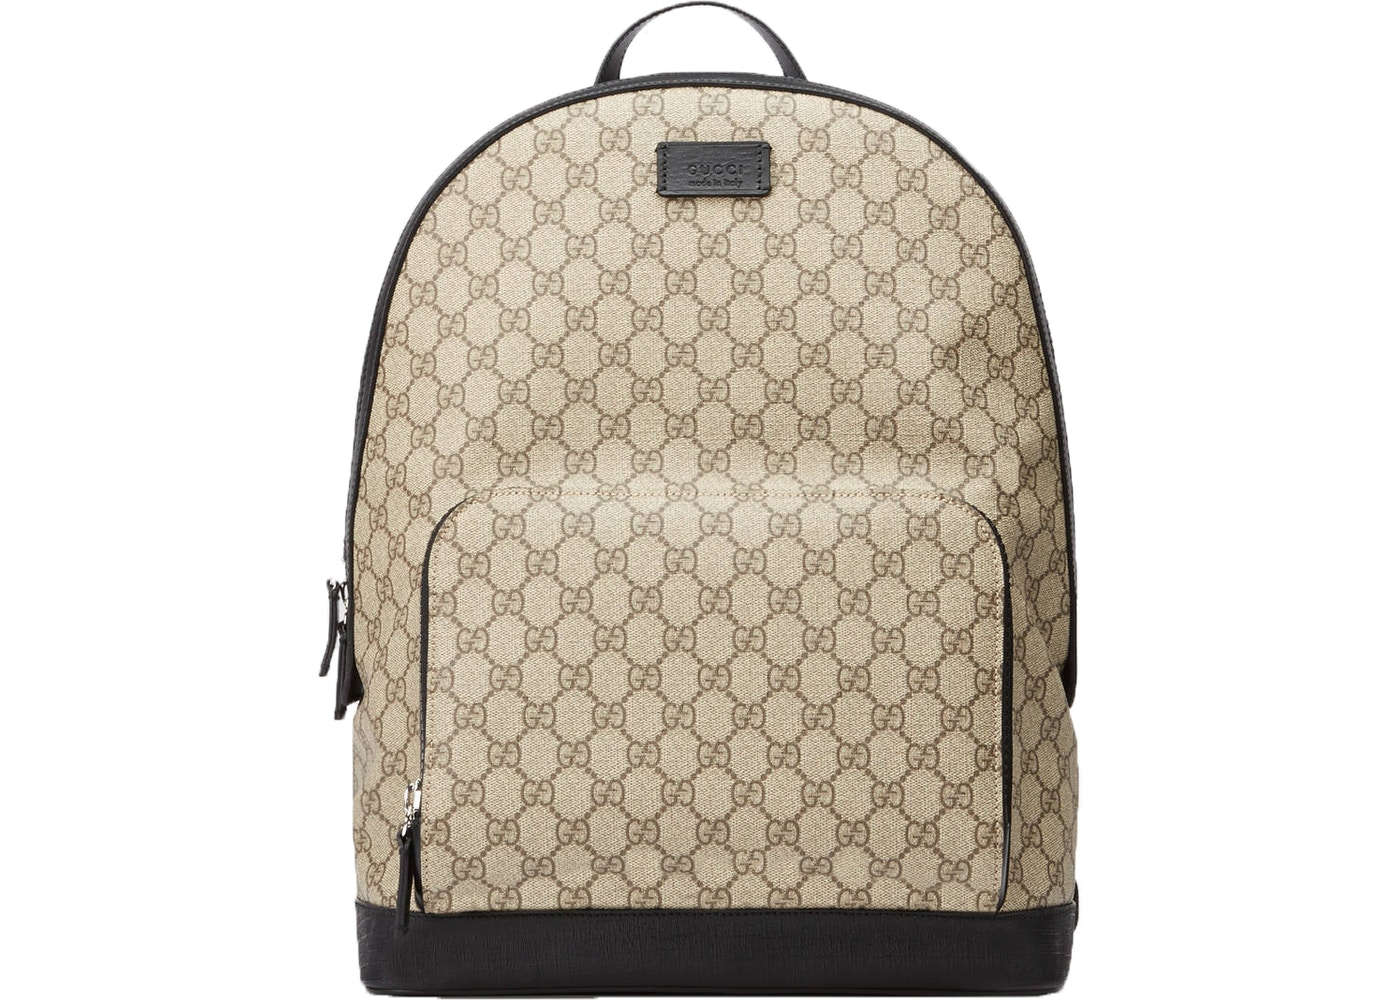 a1ca6f19f932 Gucci GG Supreme Backpack Front Zipper Pocket Beige/Black. Front Zipper  Pocket Beige/Black